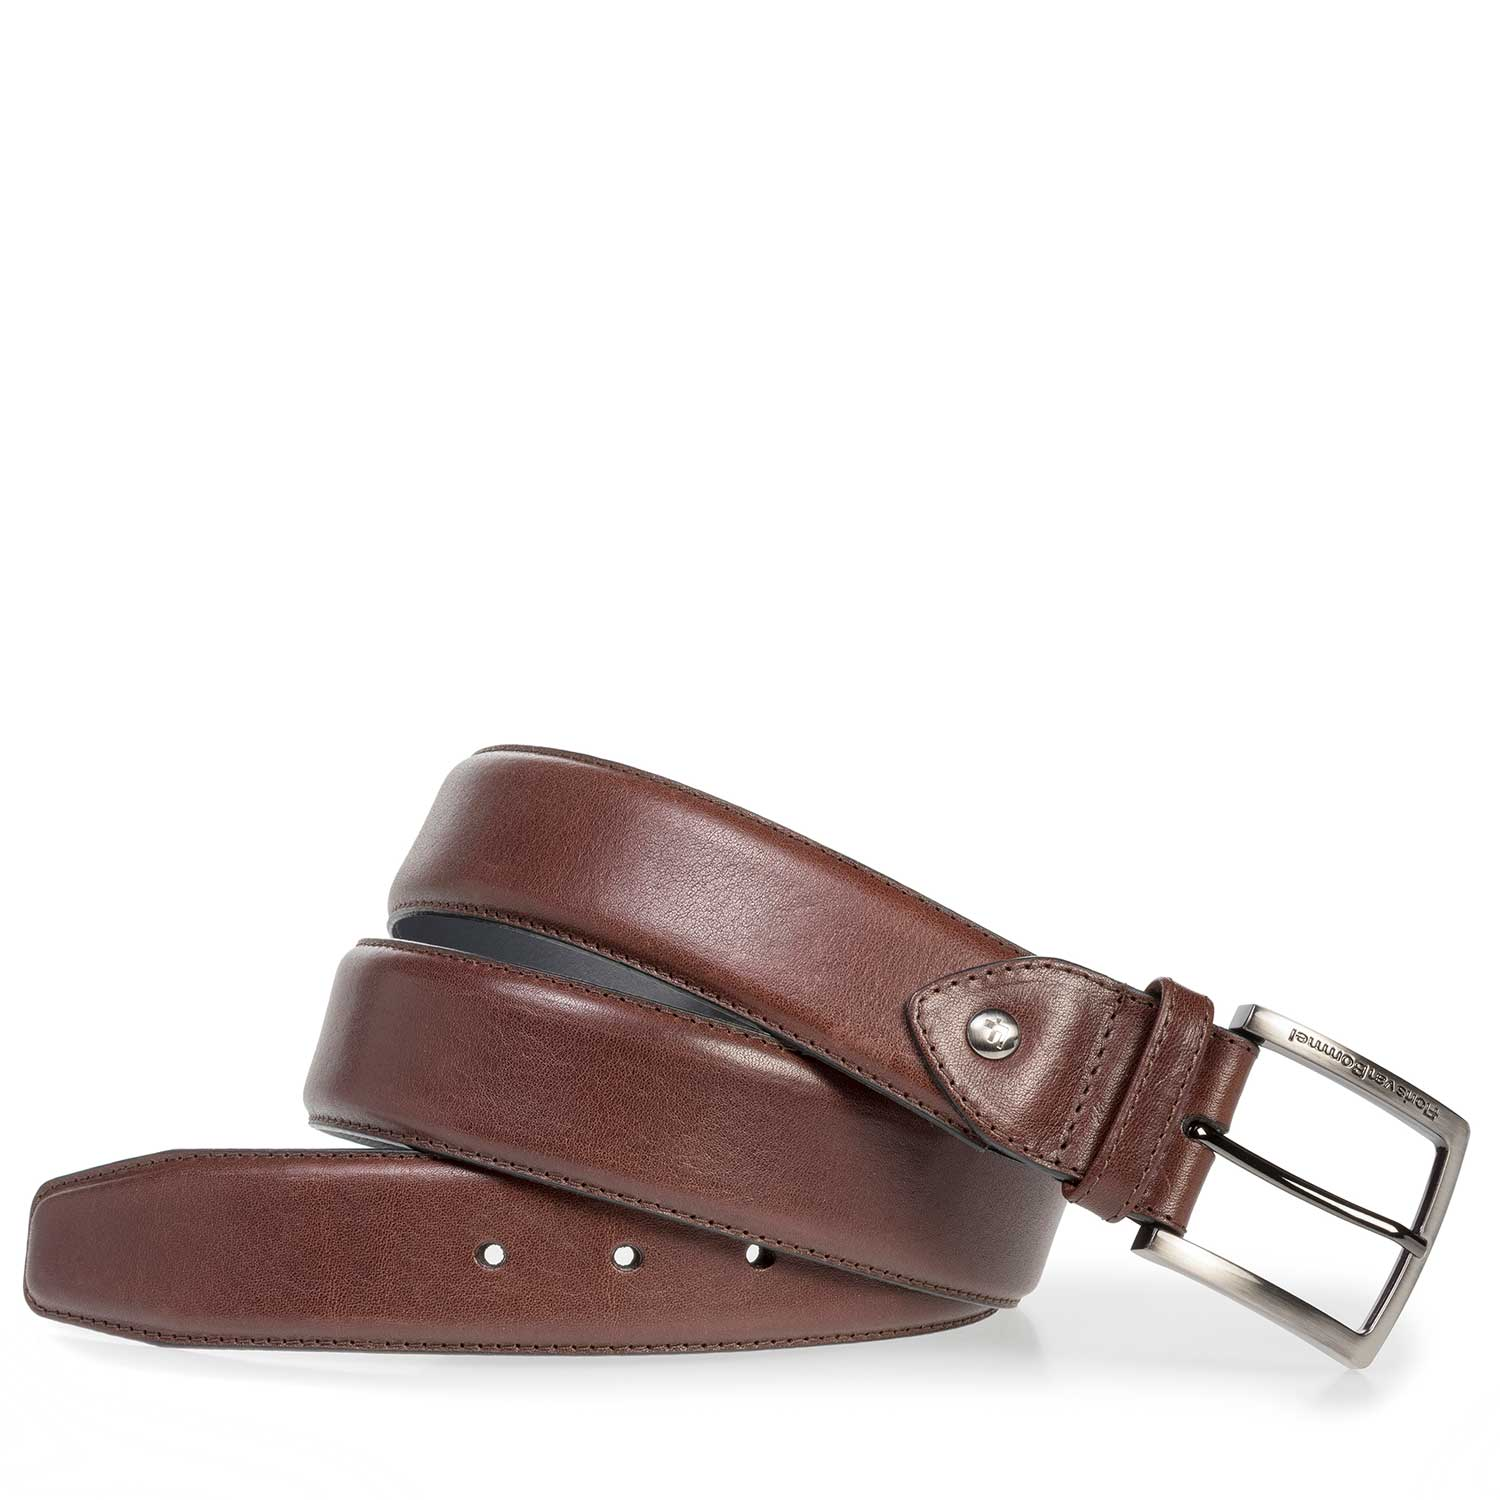 75202/23 - Red-brown calf leather belt